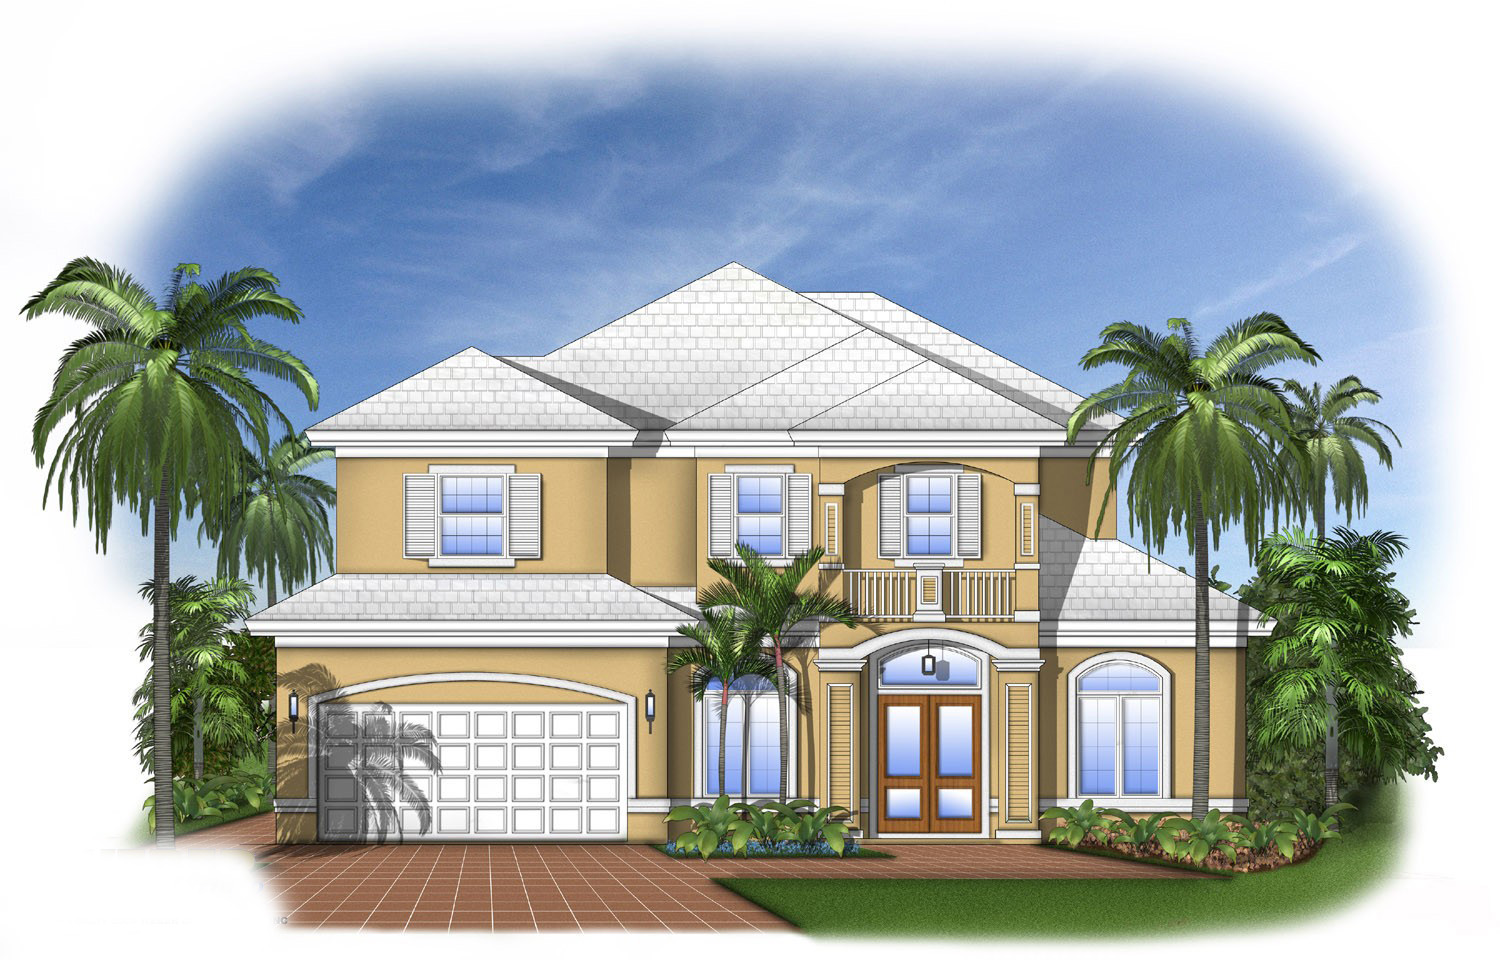 Florida house plan with open layout 66102we for Florida cottage plans